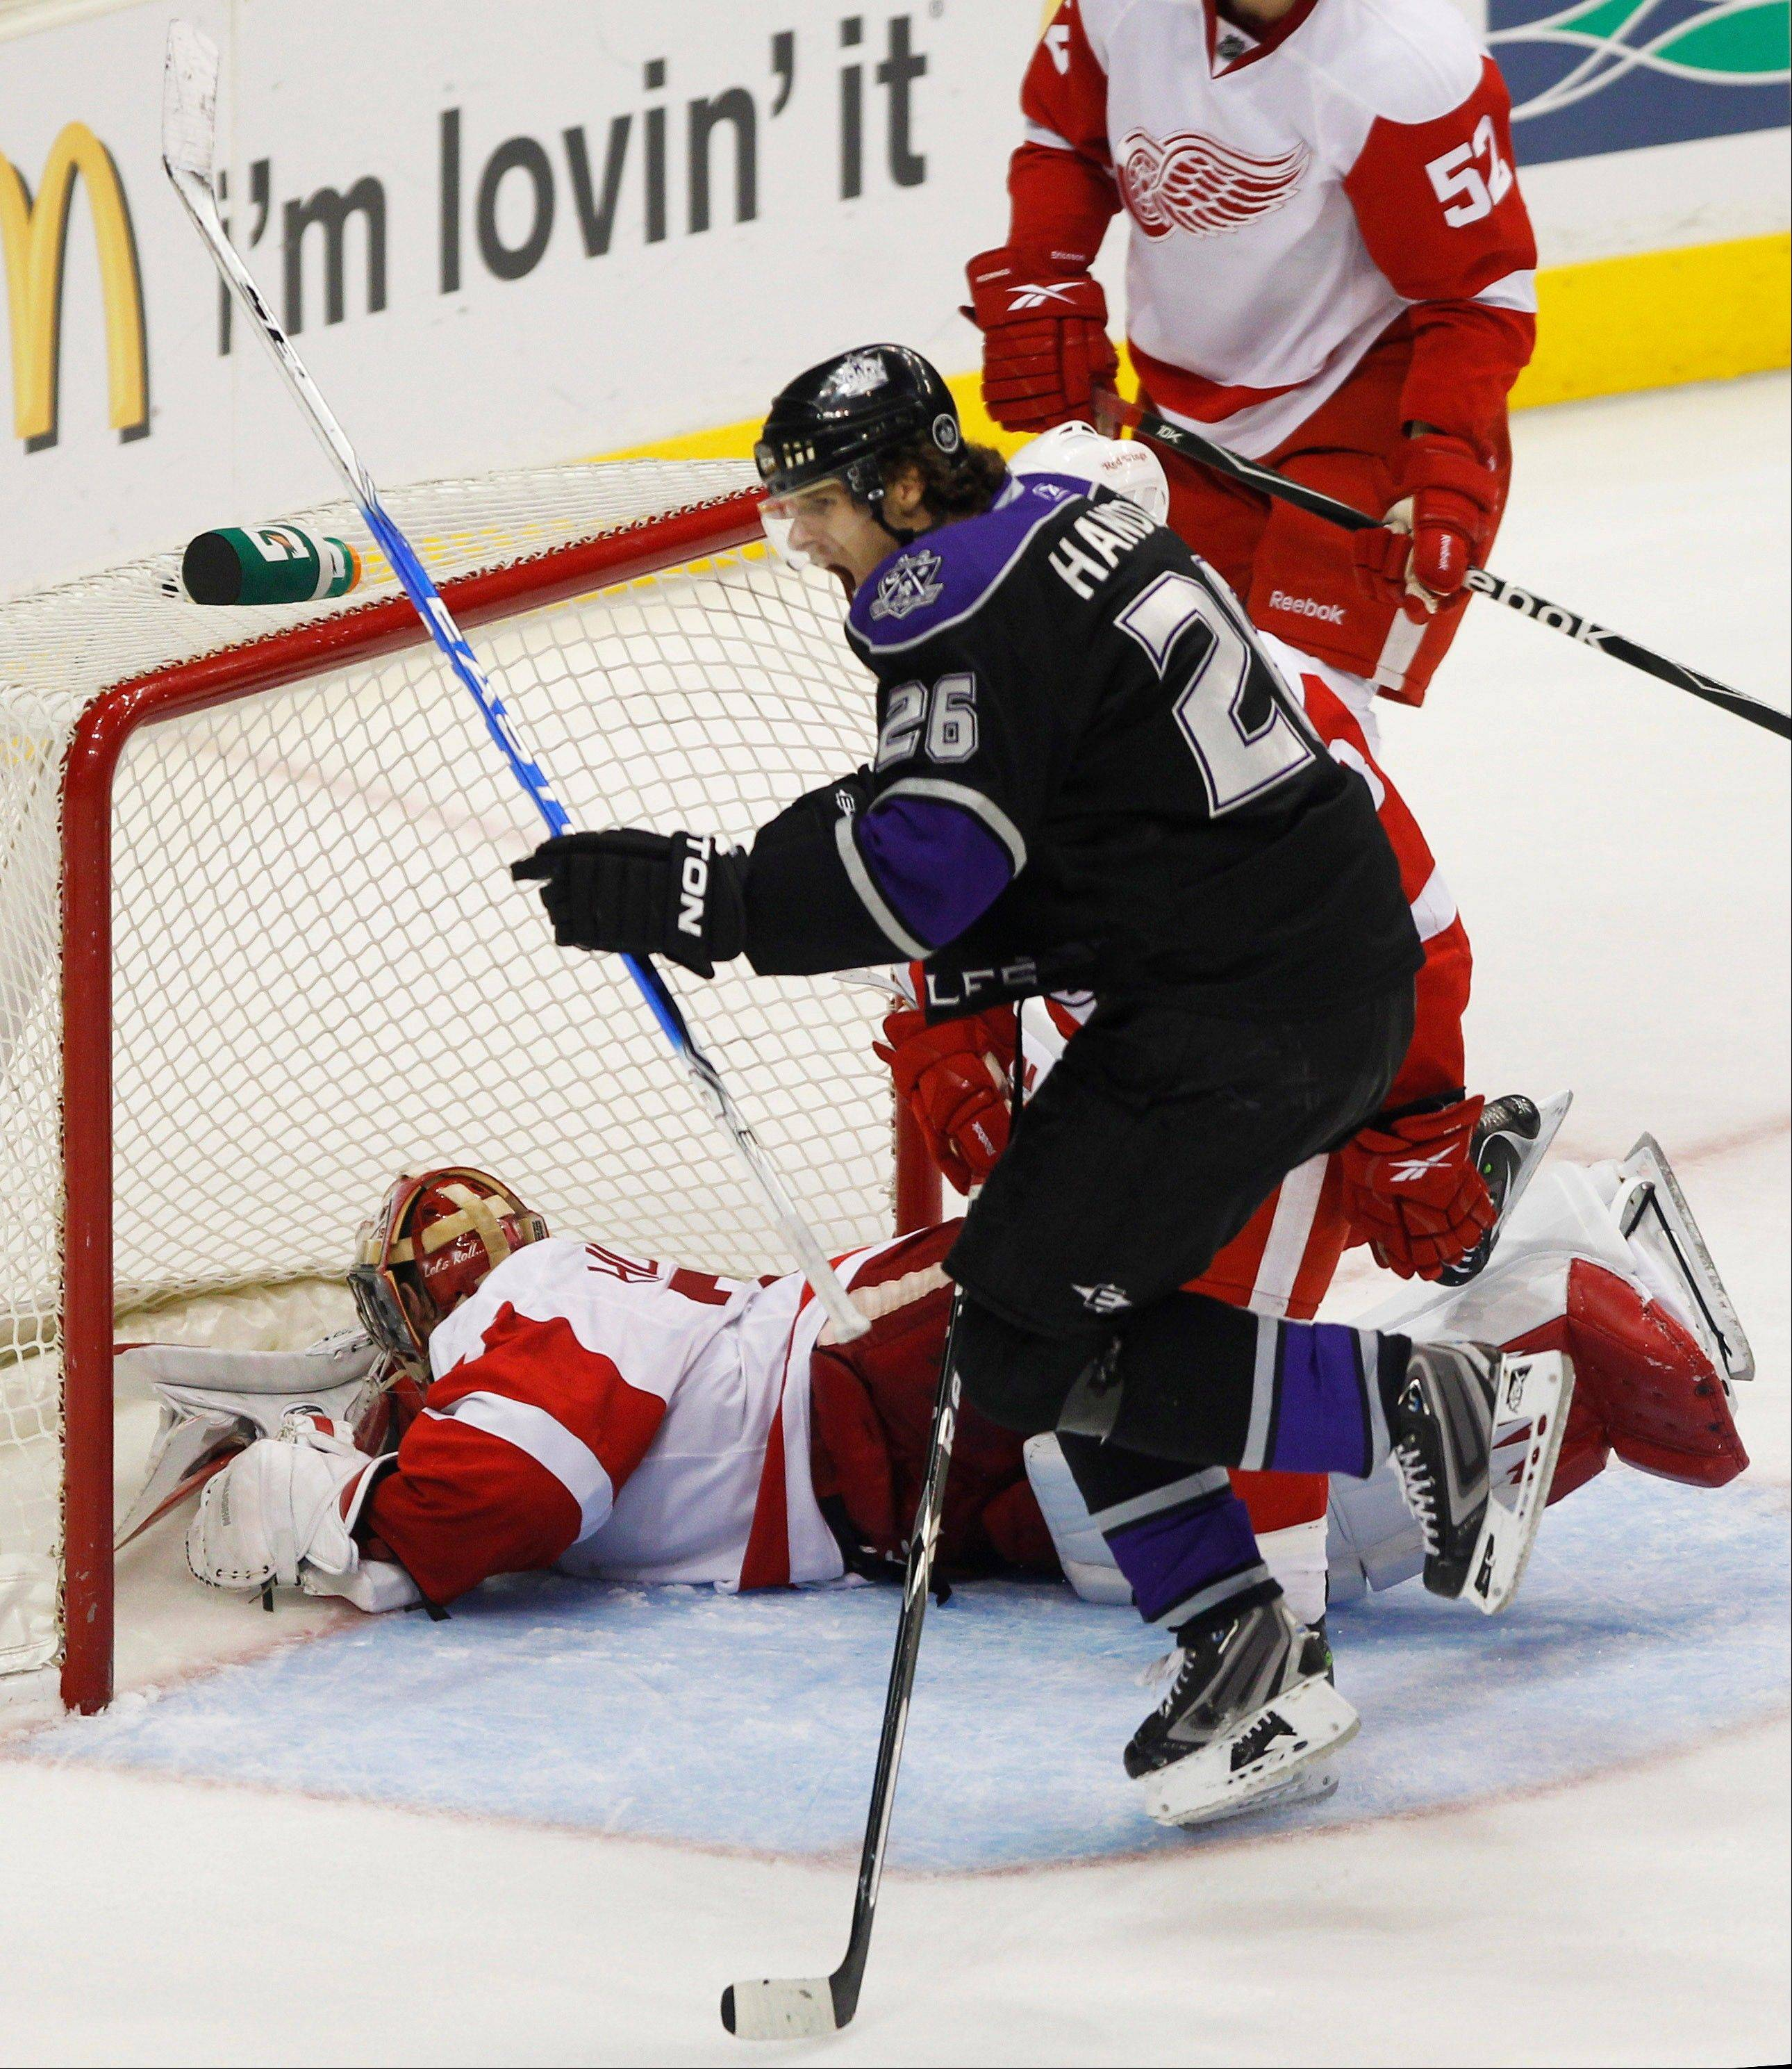 Center Michal Handzus, then with the Los Angeles Kings, celebrates his game winning goal past Detroit Red Wings goalie Jimmy Howard. The Blackhawks acquired Handzus in a trade with the San Jose Sharks.